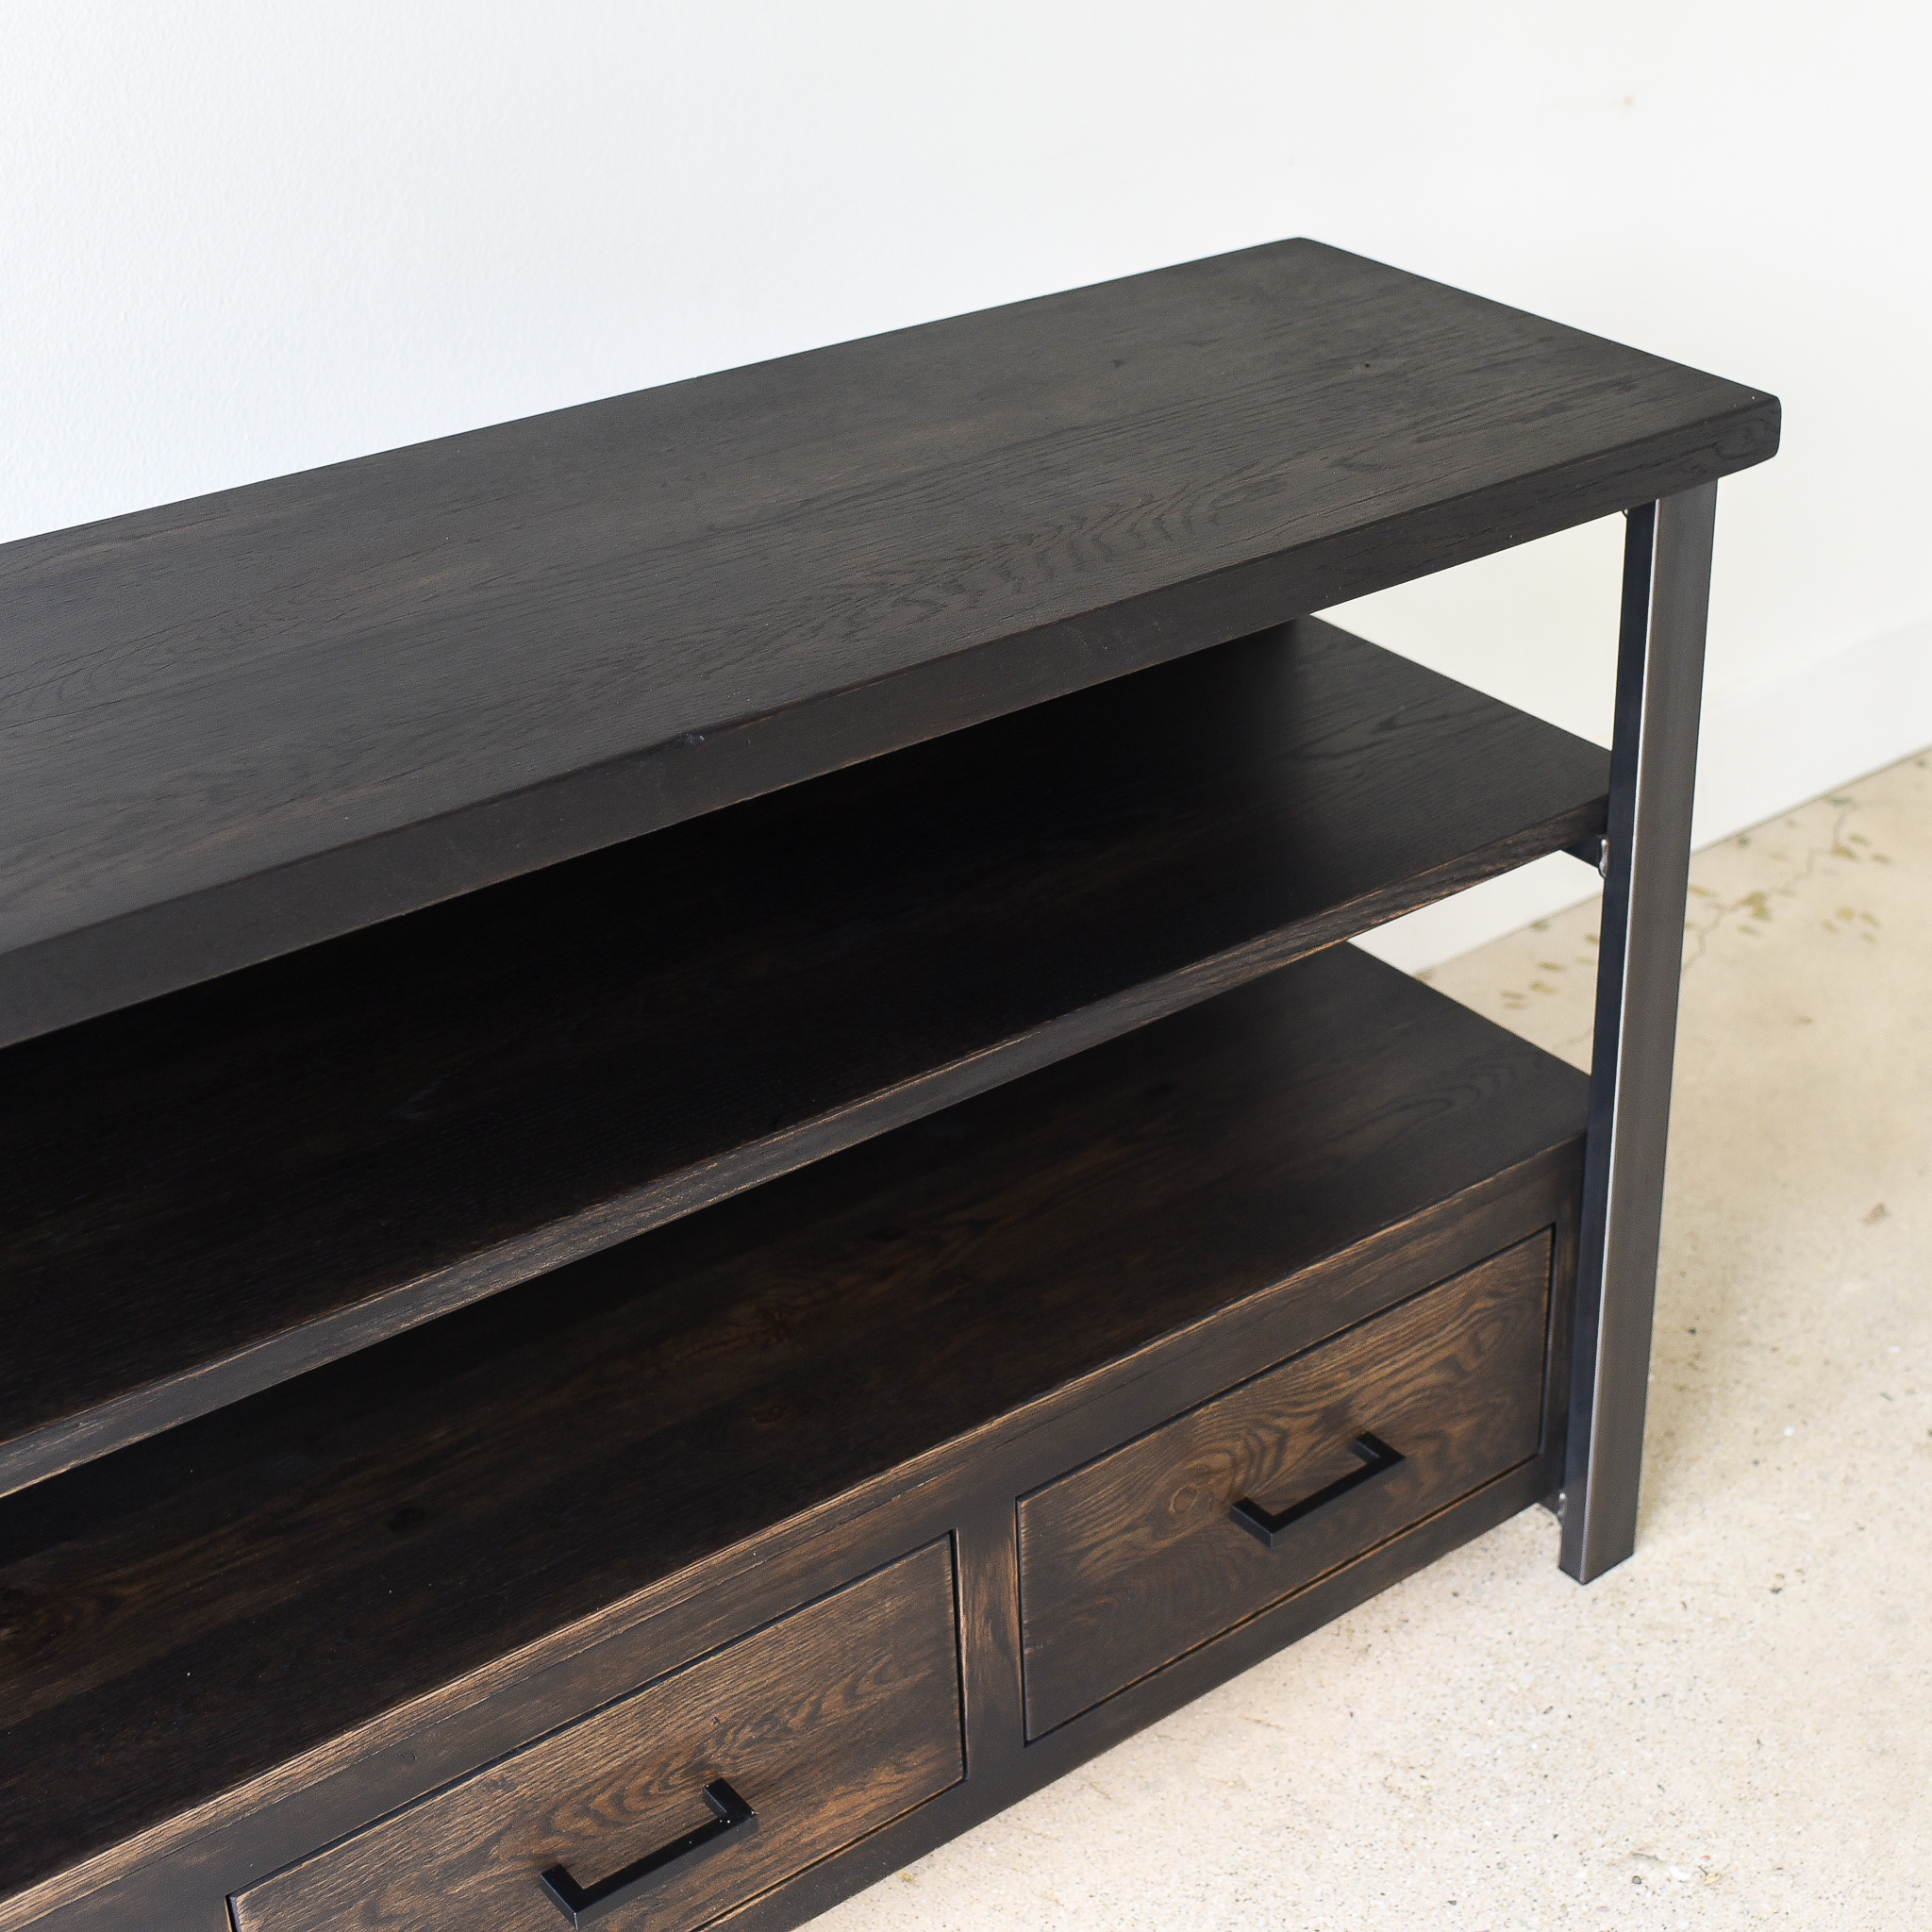 Reclaimed Storage Media Cabinet - black finish